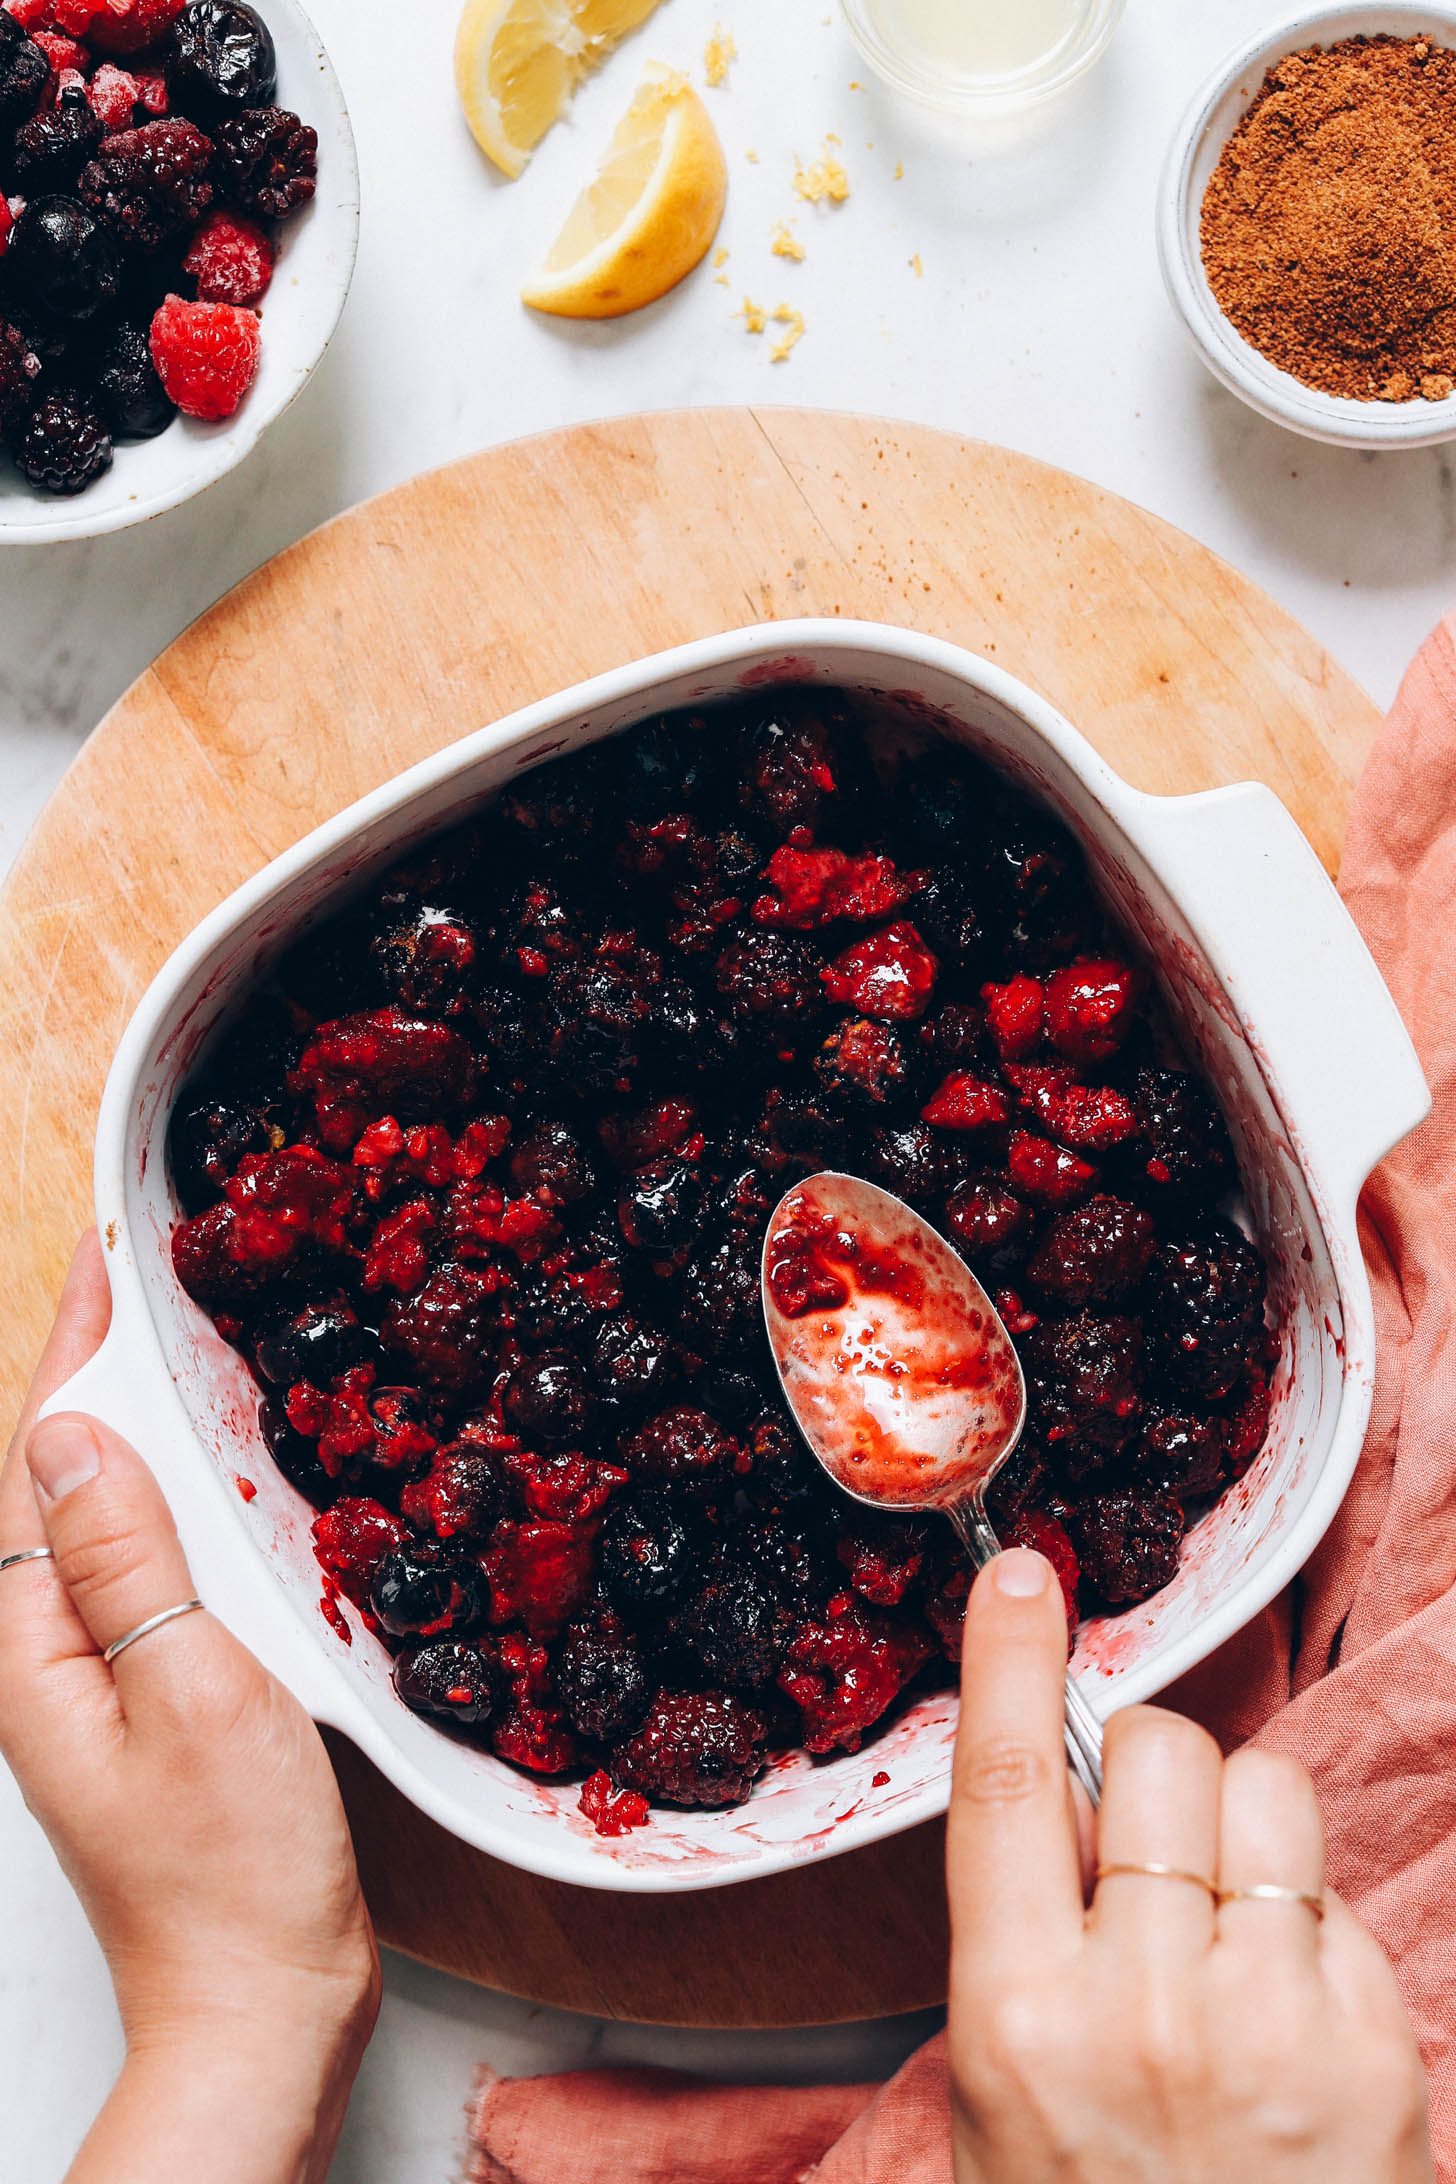 Spoon in a baking dish of mixed berries